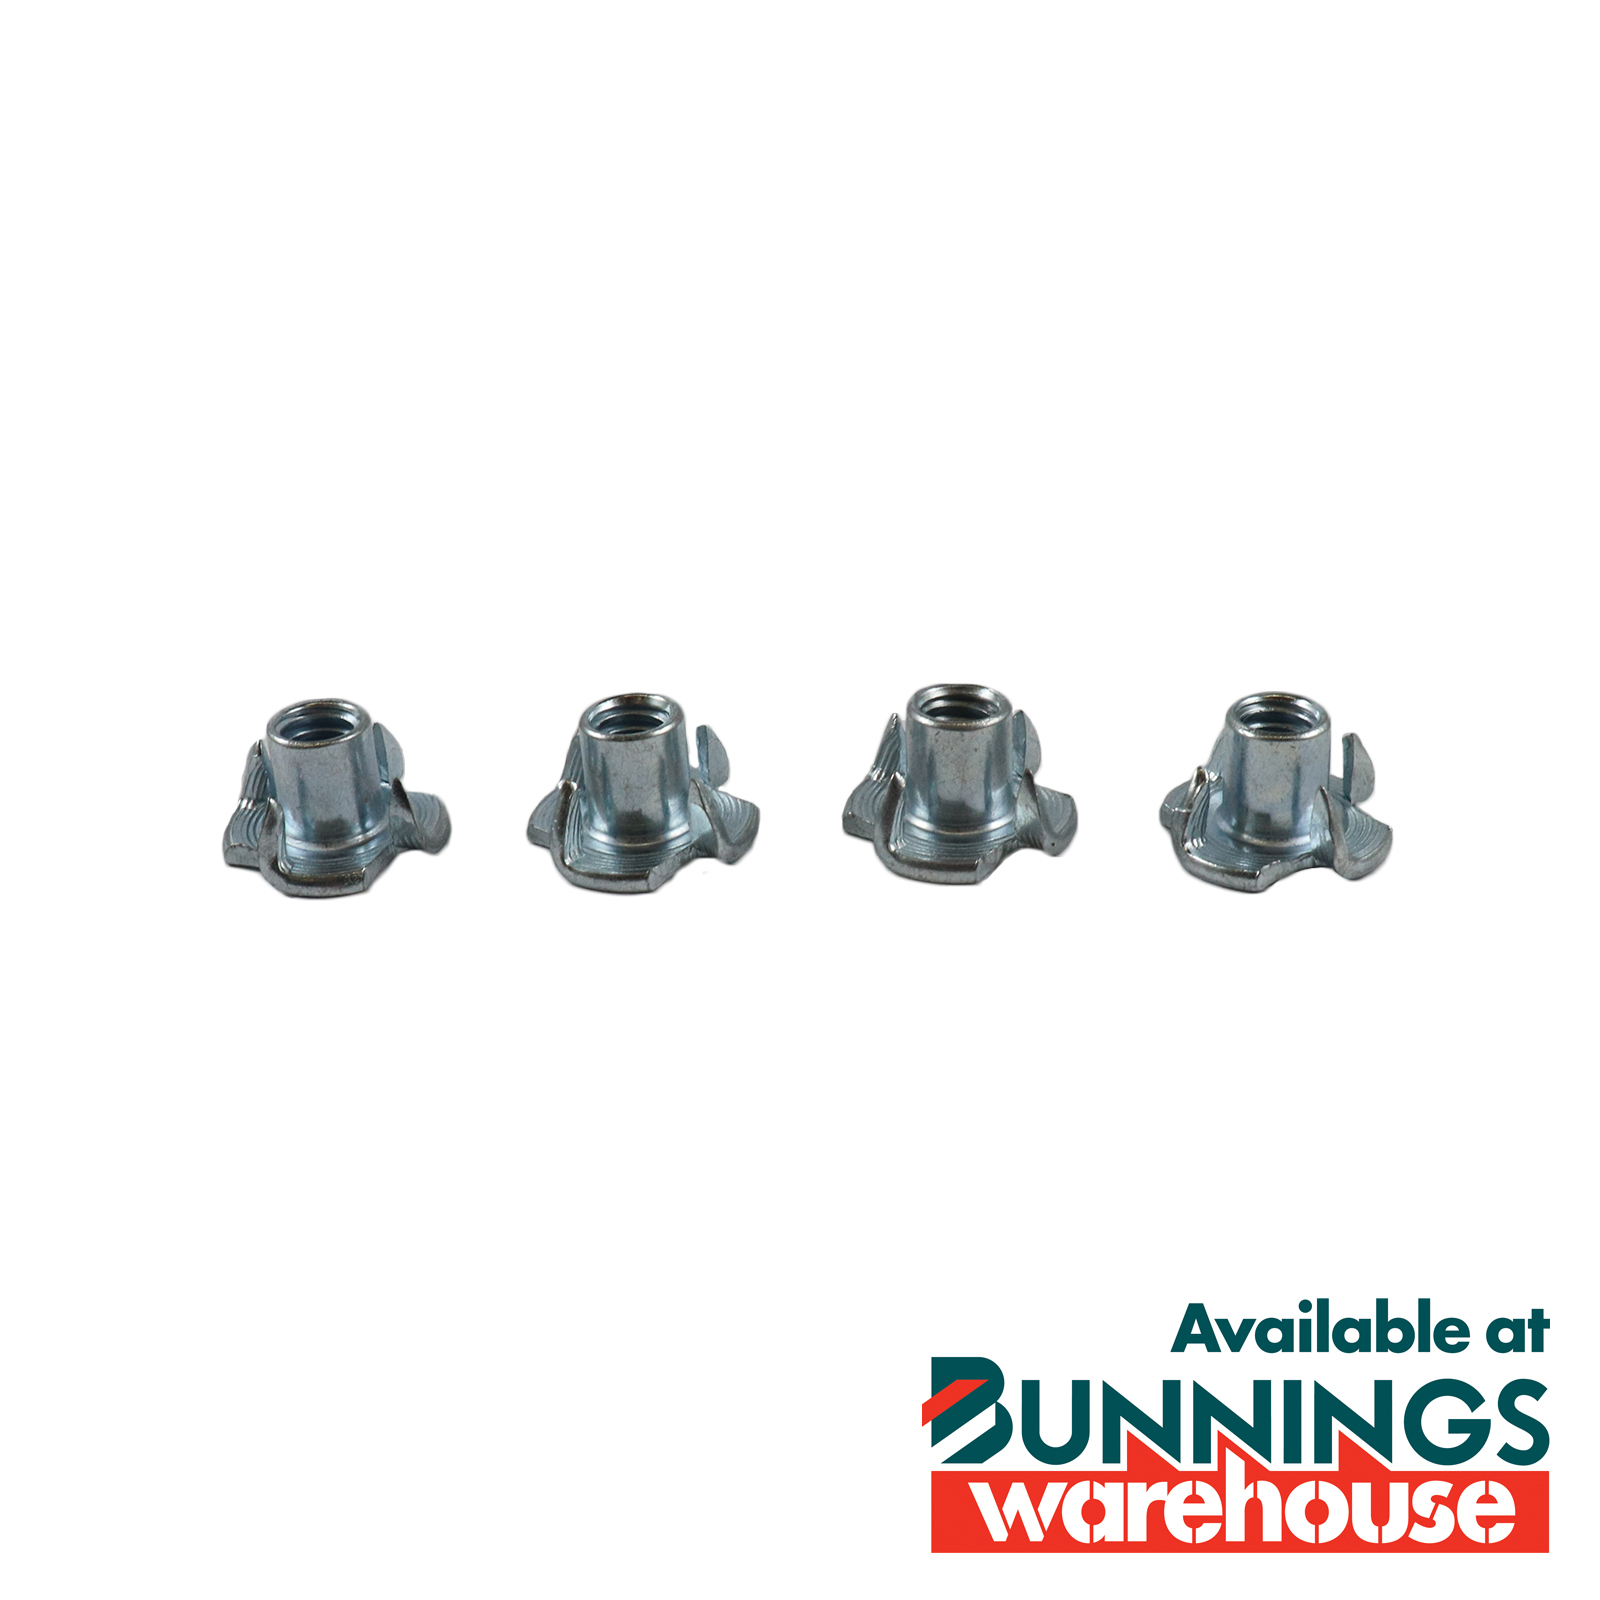 "Adoored 1/4"" T-Nuts 4PK"